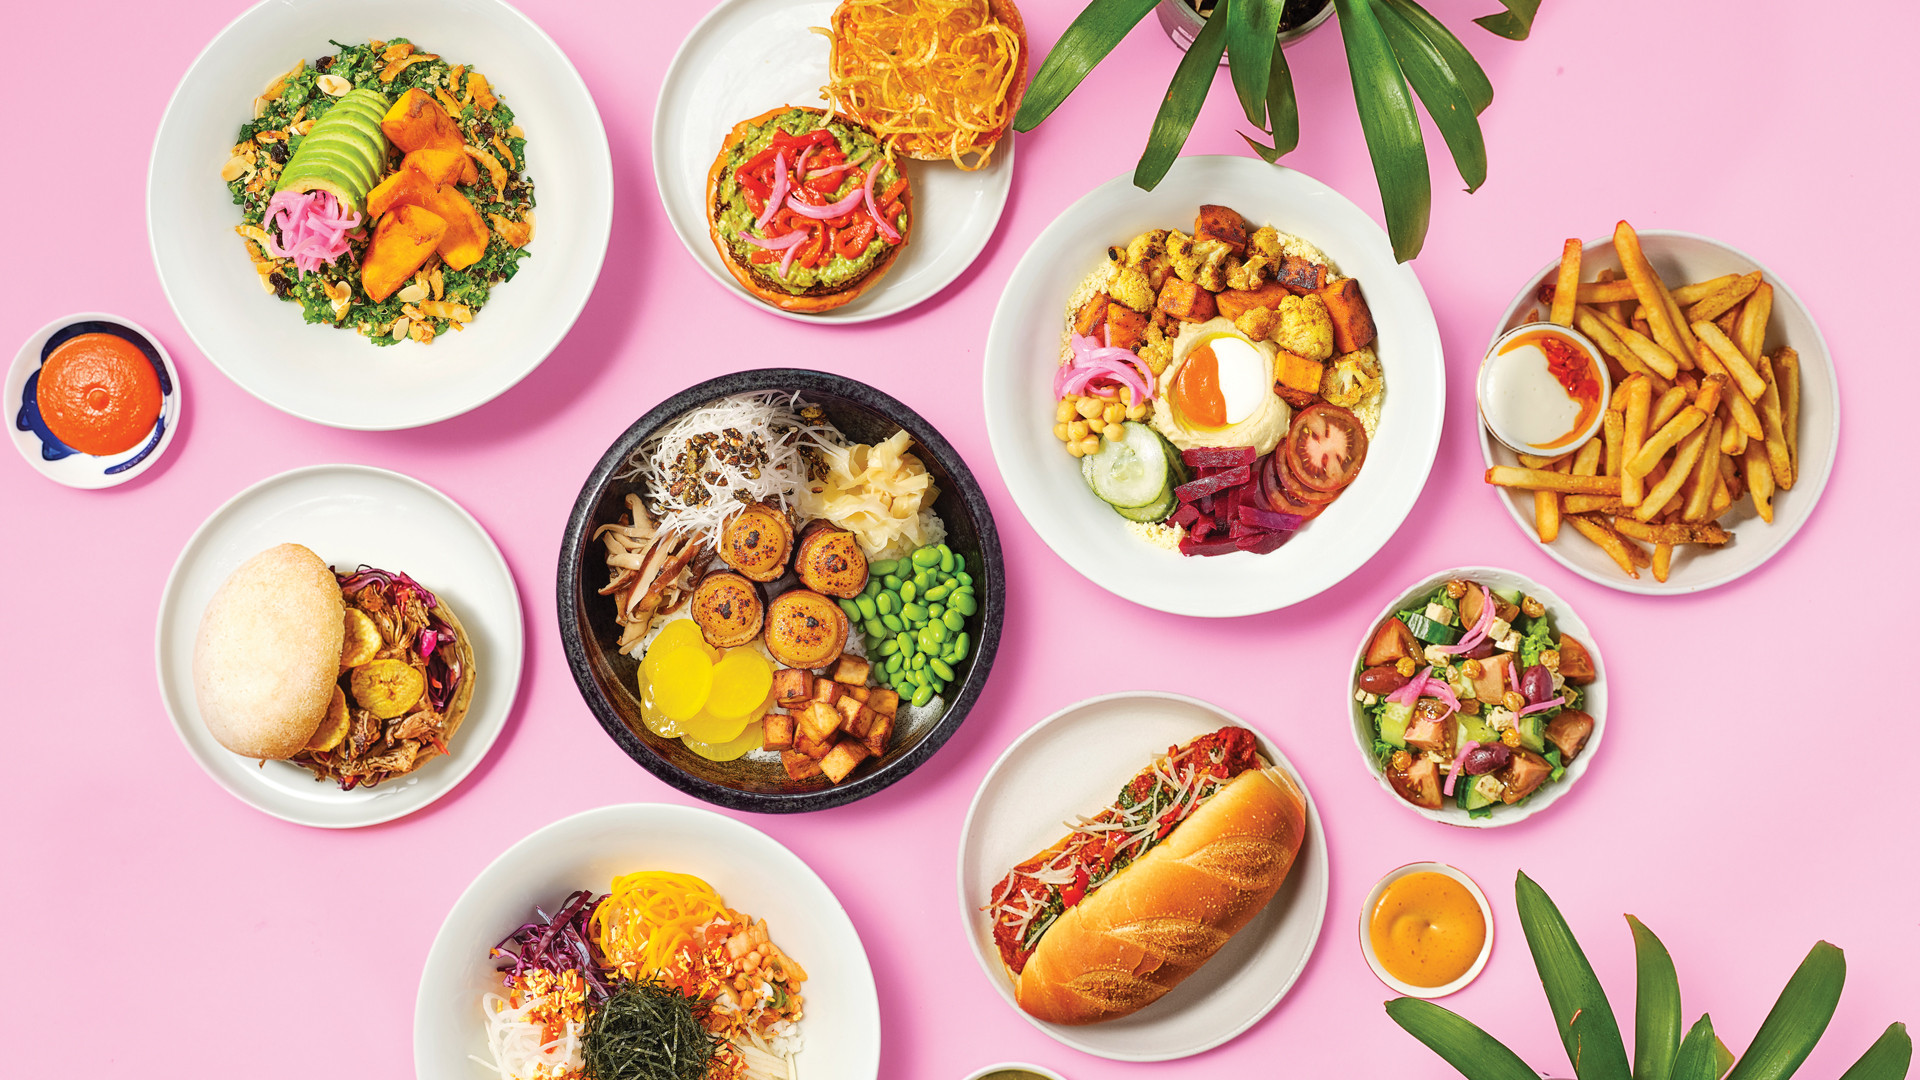 A spread of plant-based dishes from SweetChops, vegan food delivery in Toronto